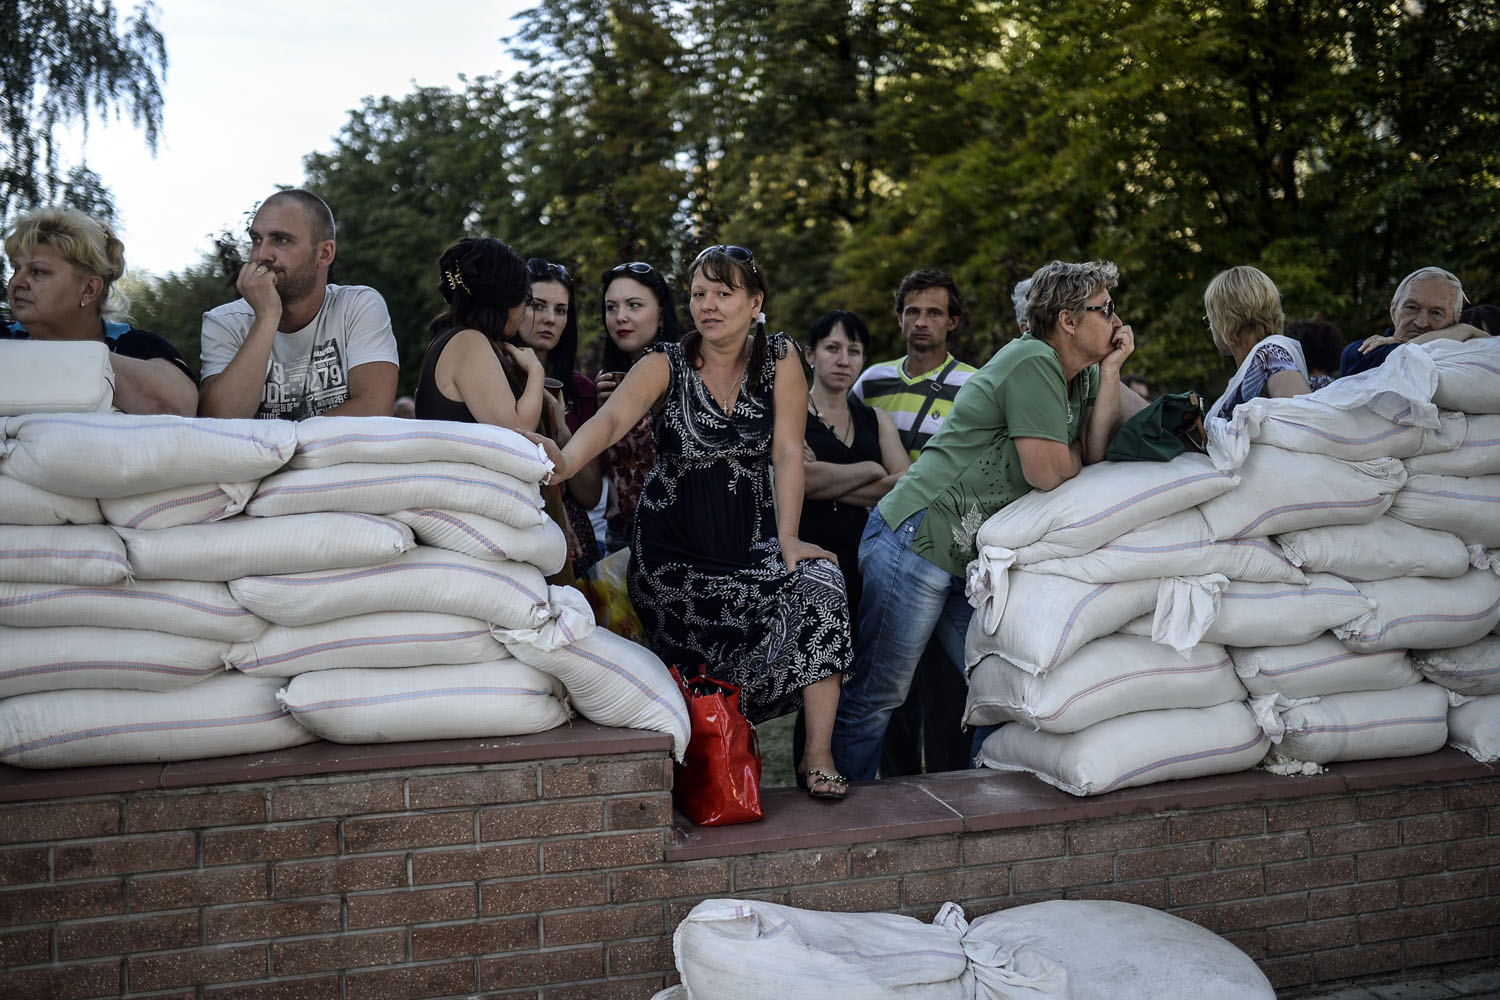 Jul. 28, 2014. Relatives of people detained by separatist Donetsk People's Republic's military wait outside of the military building in Donetsk.